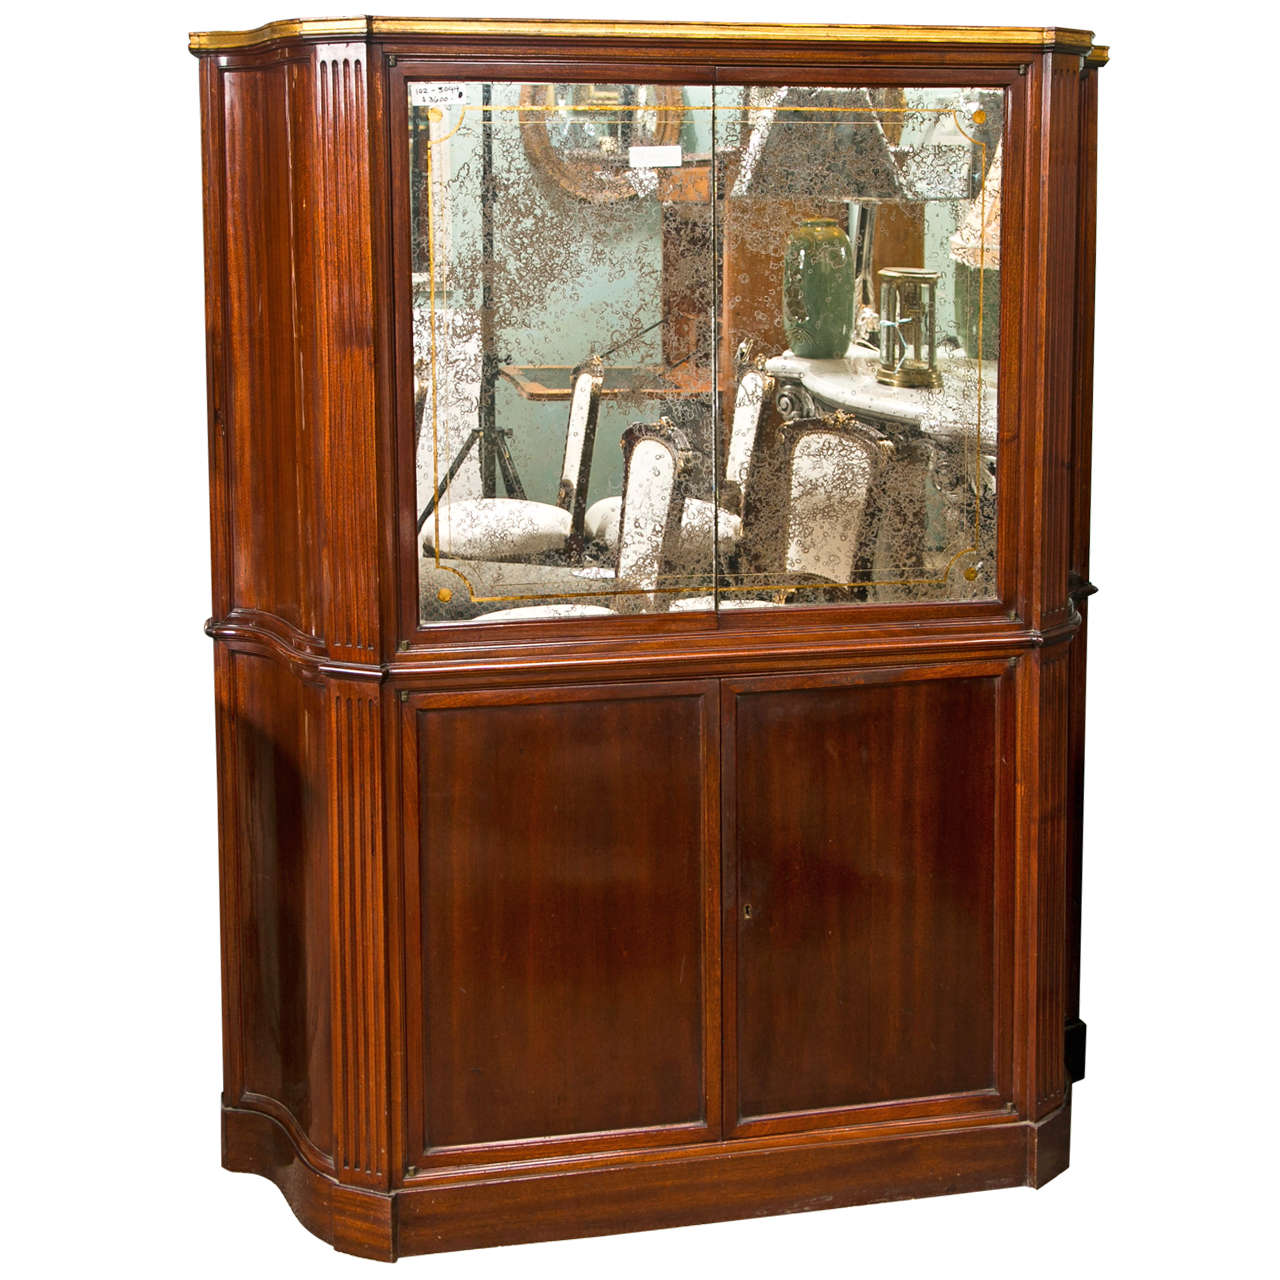 art deco style mahogany bar cabinet for sale at 1stdibs. Black Bedroom Furniture Sets. Home Design Ideas